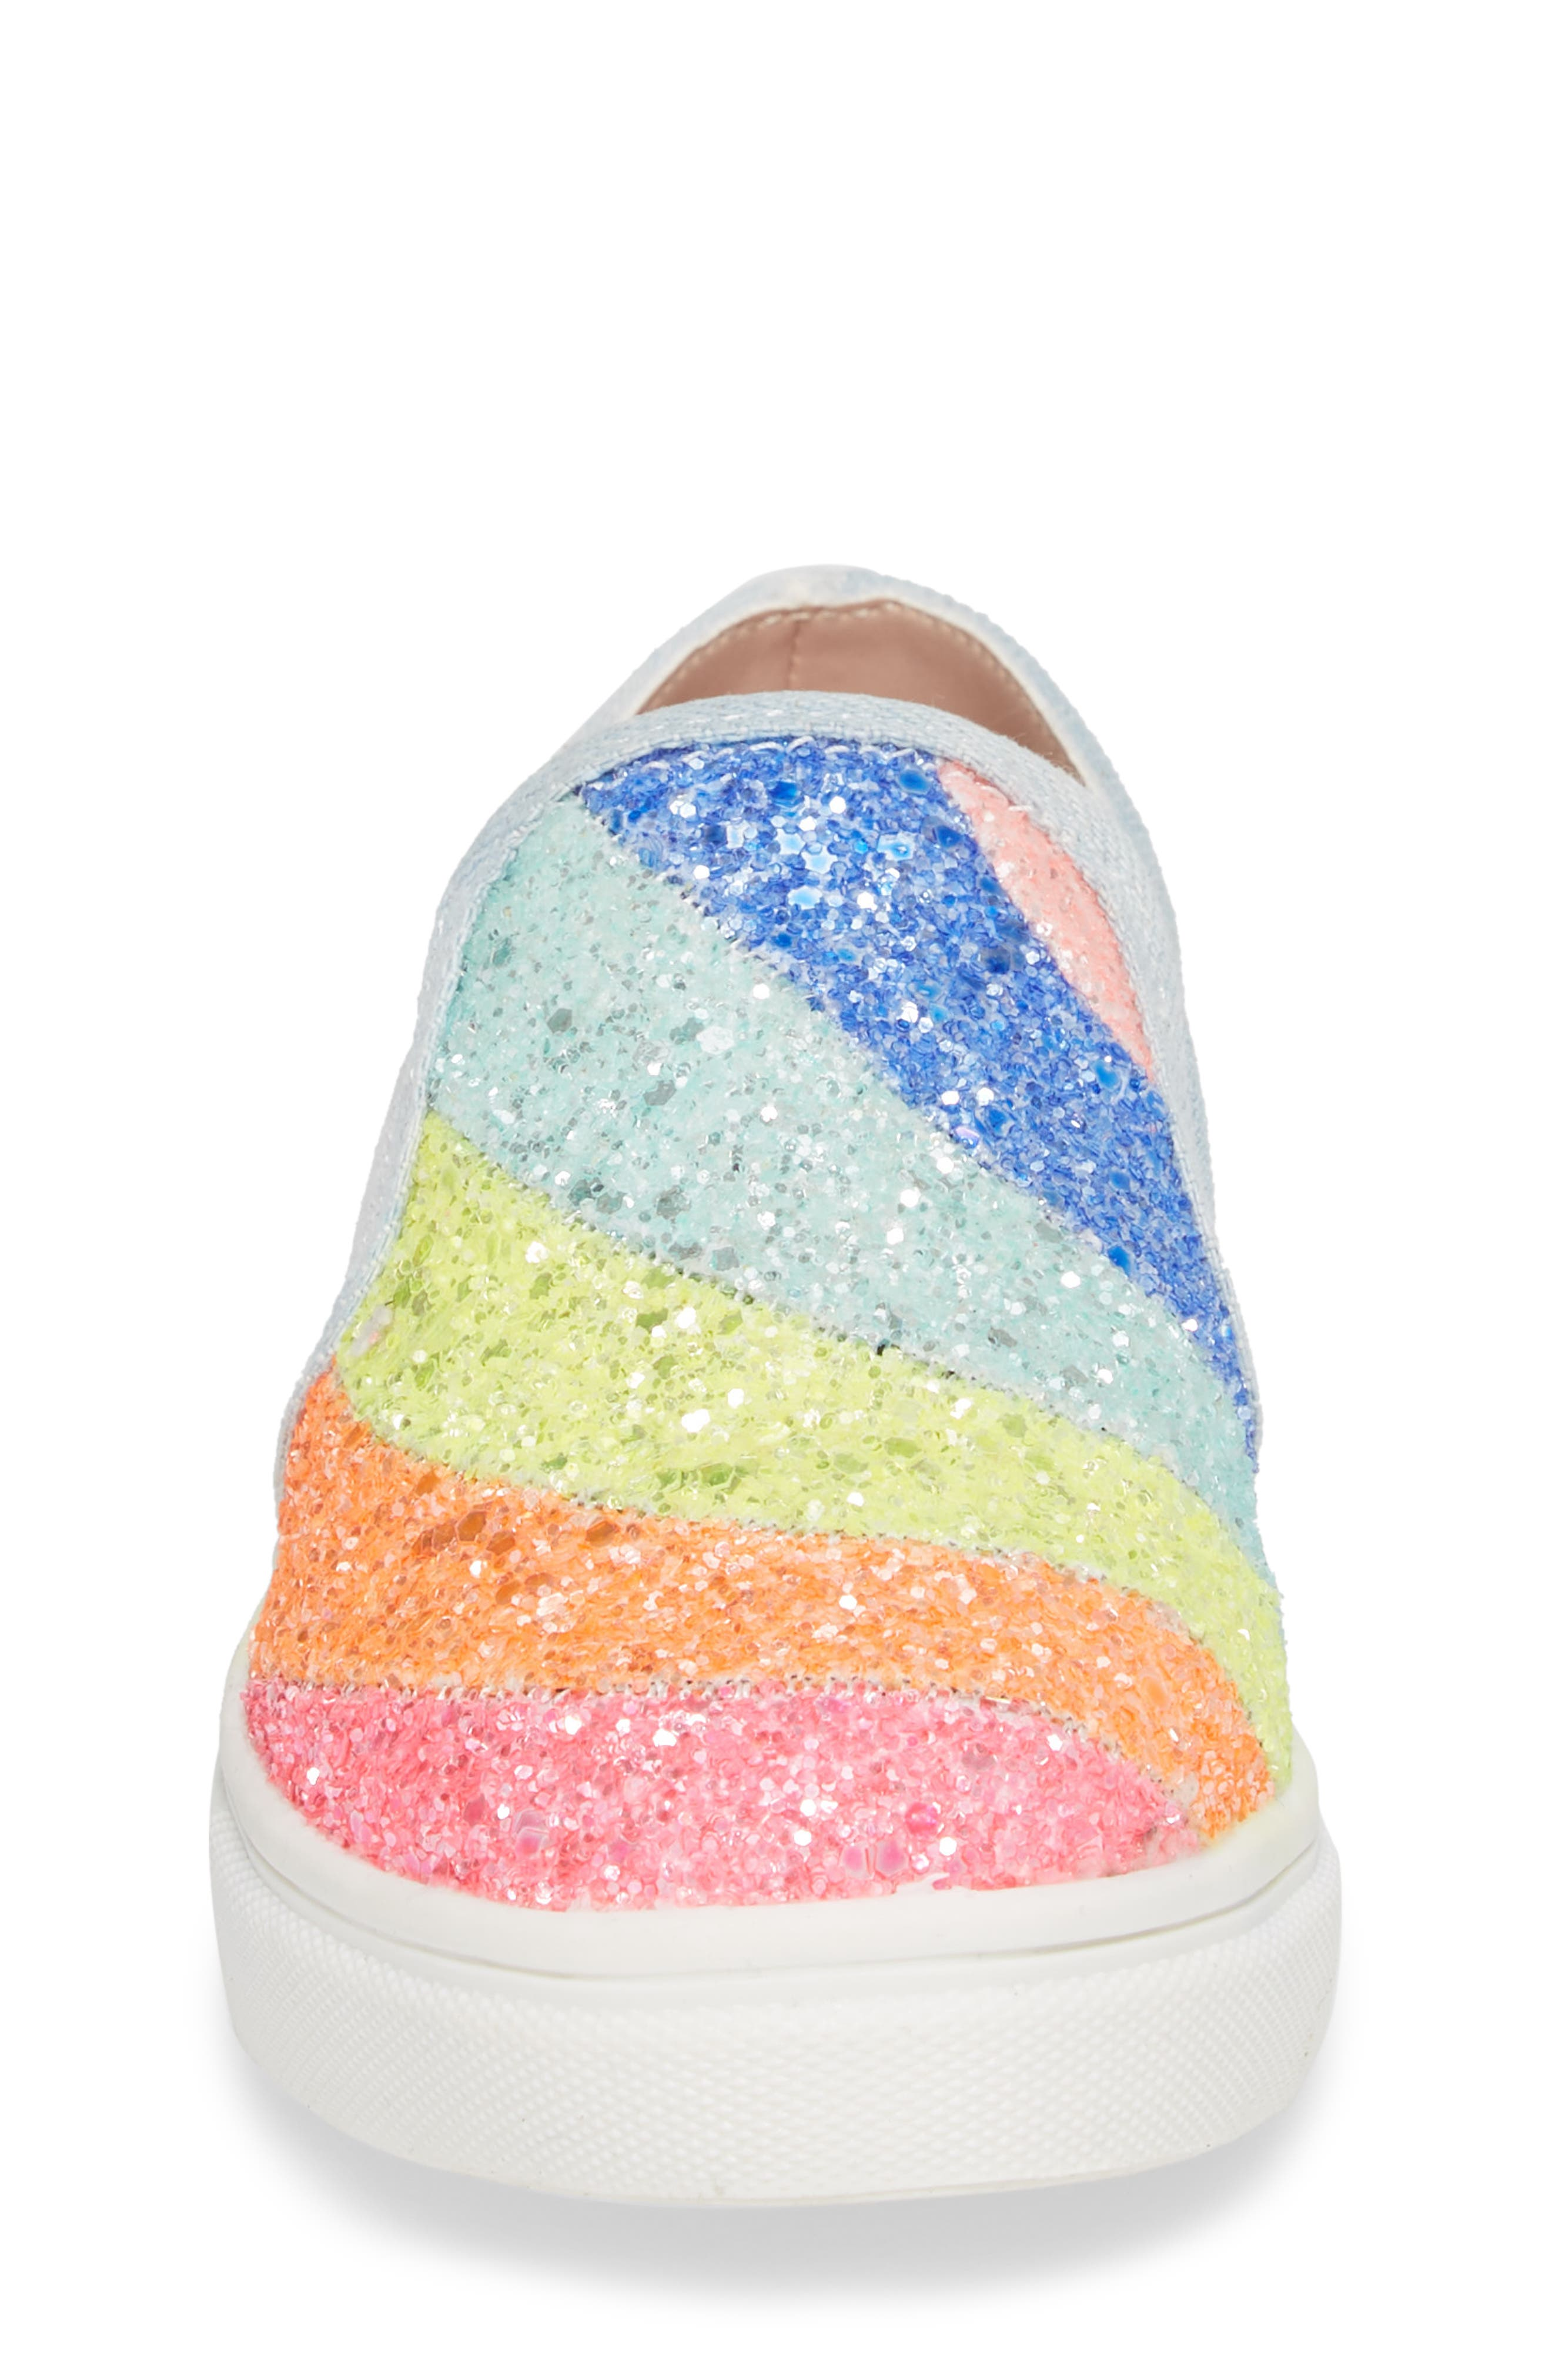 JWISH Rainbow Slip-On Sneaker,                             Alternate thumbnail 4, color,                             650